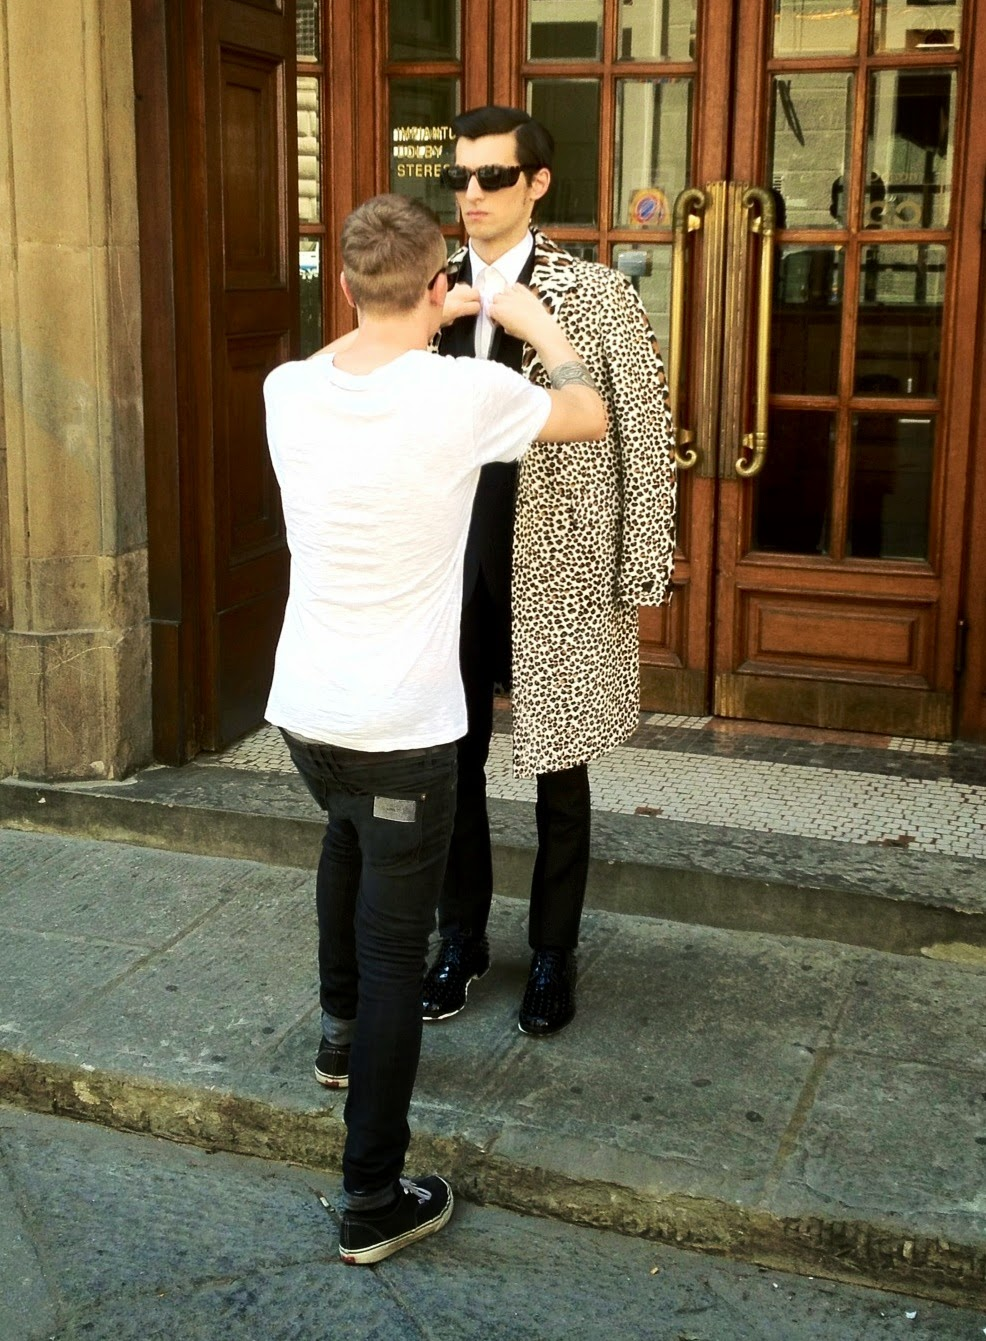 00O00 Menswear Blog: Behind the scenes at @LuisaViaRoma's #Firenze4Ever Styling Sessions